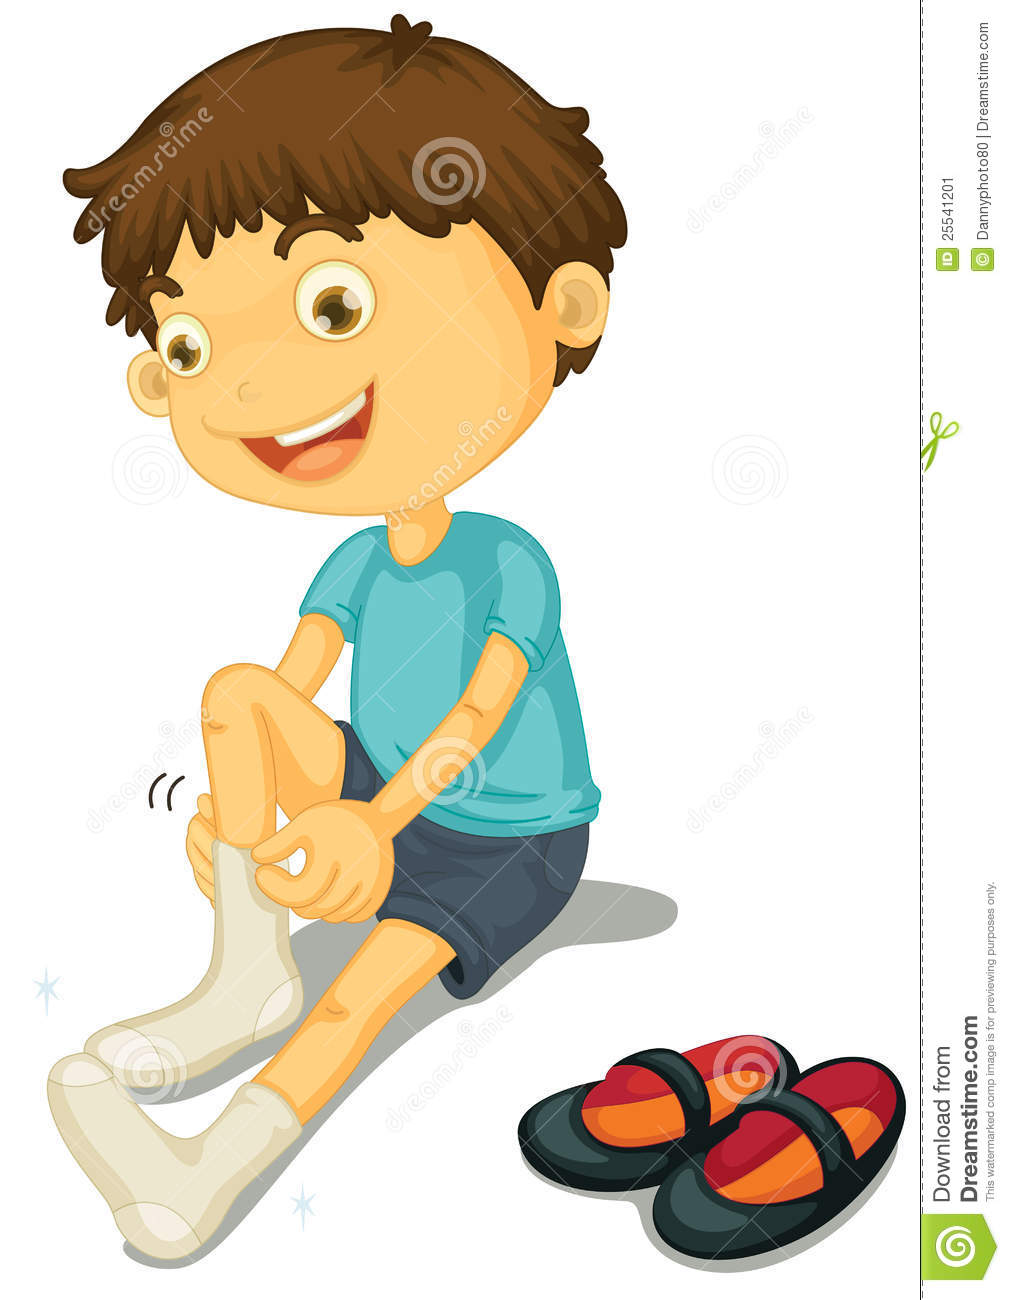 Boy And Shoes Stock Image - Image: 25541201